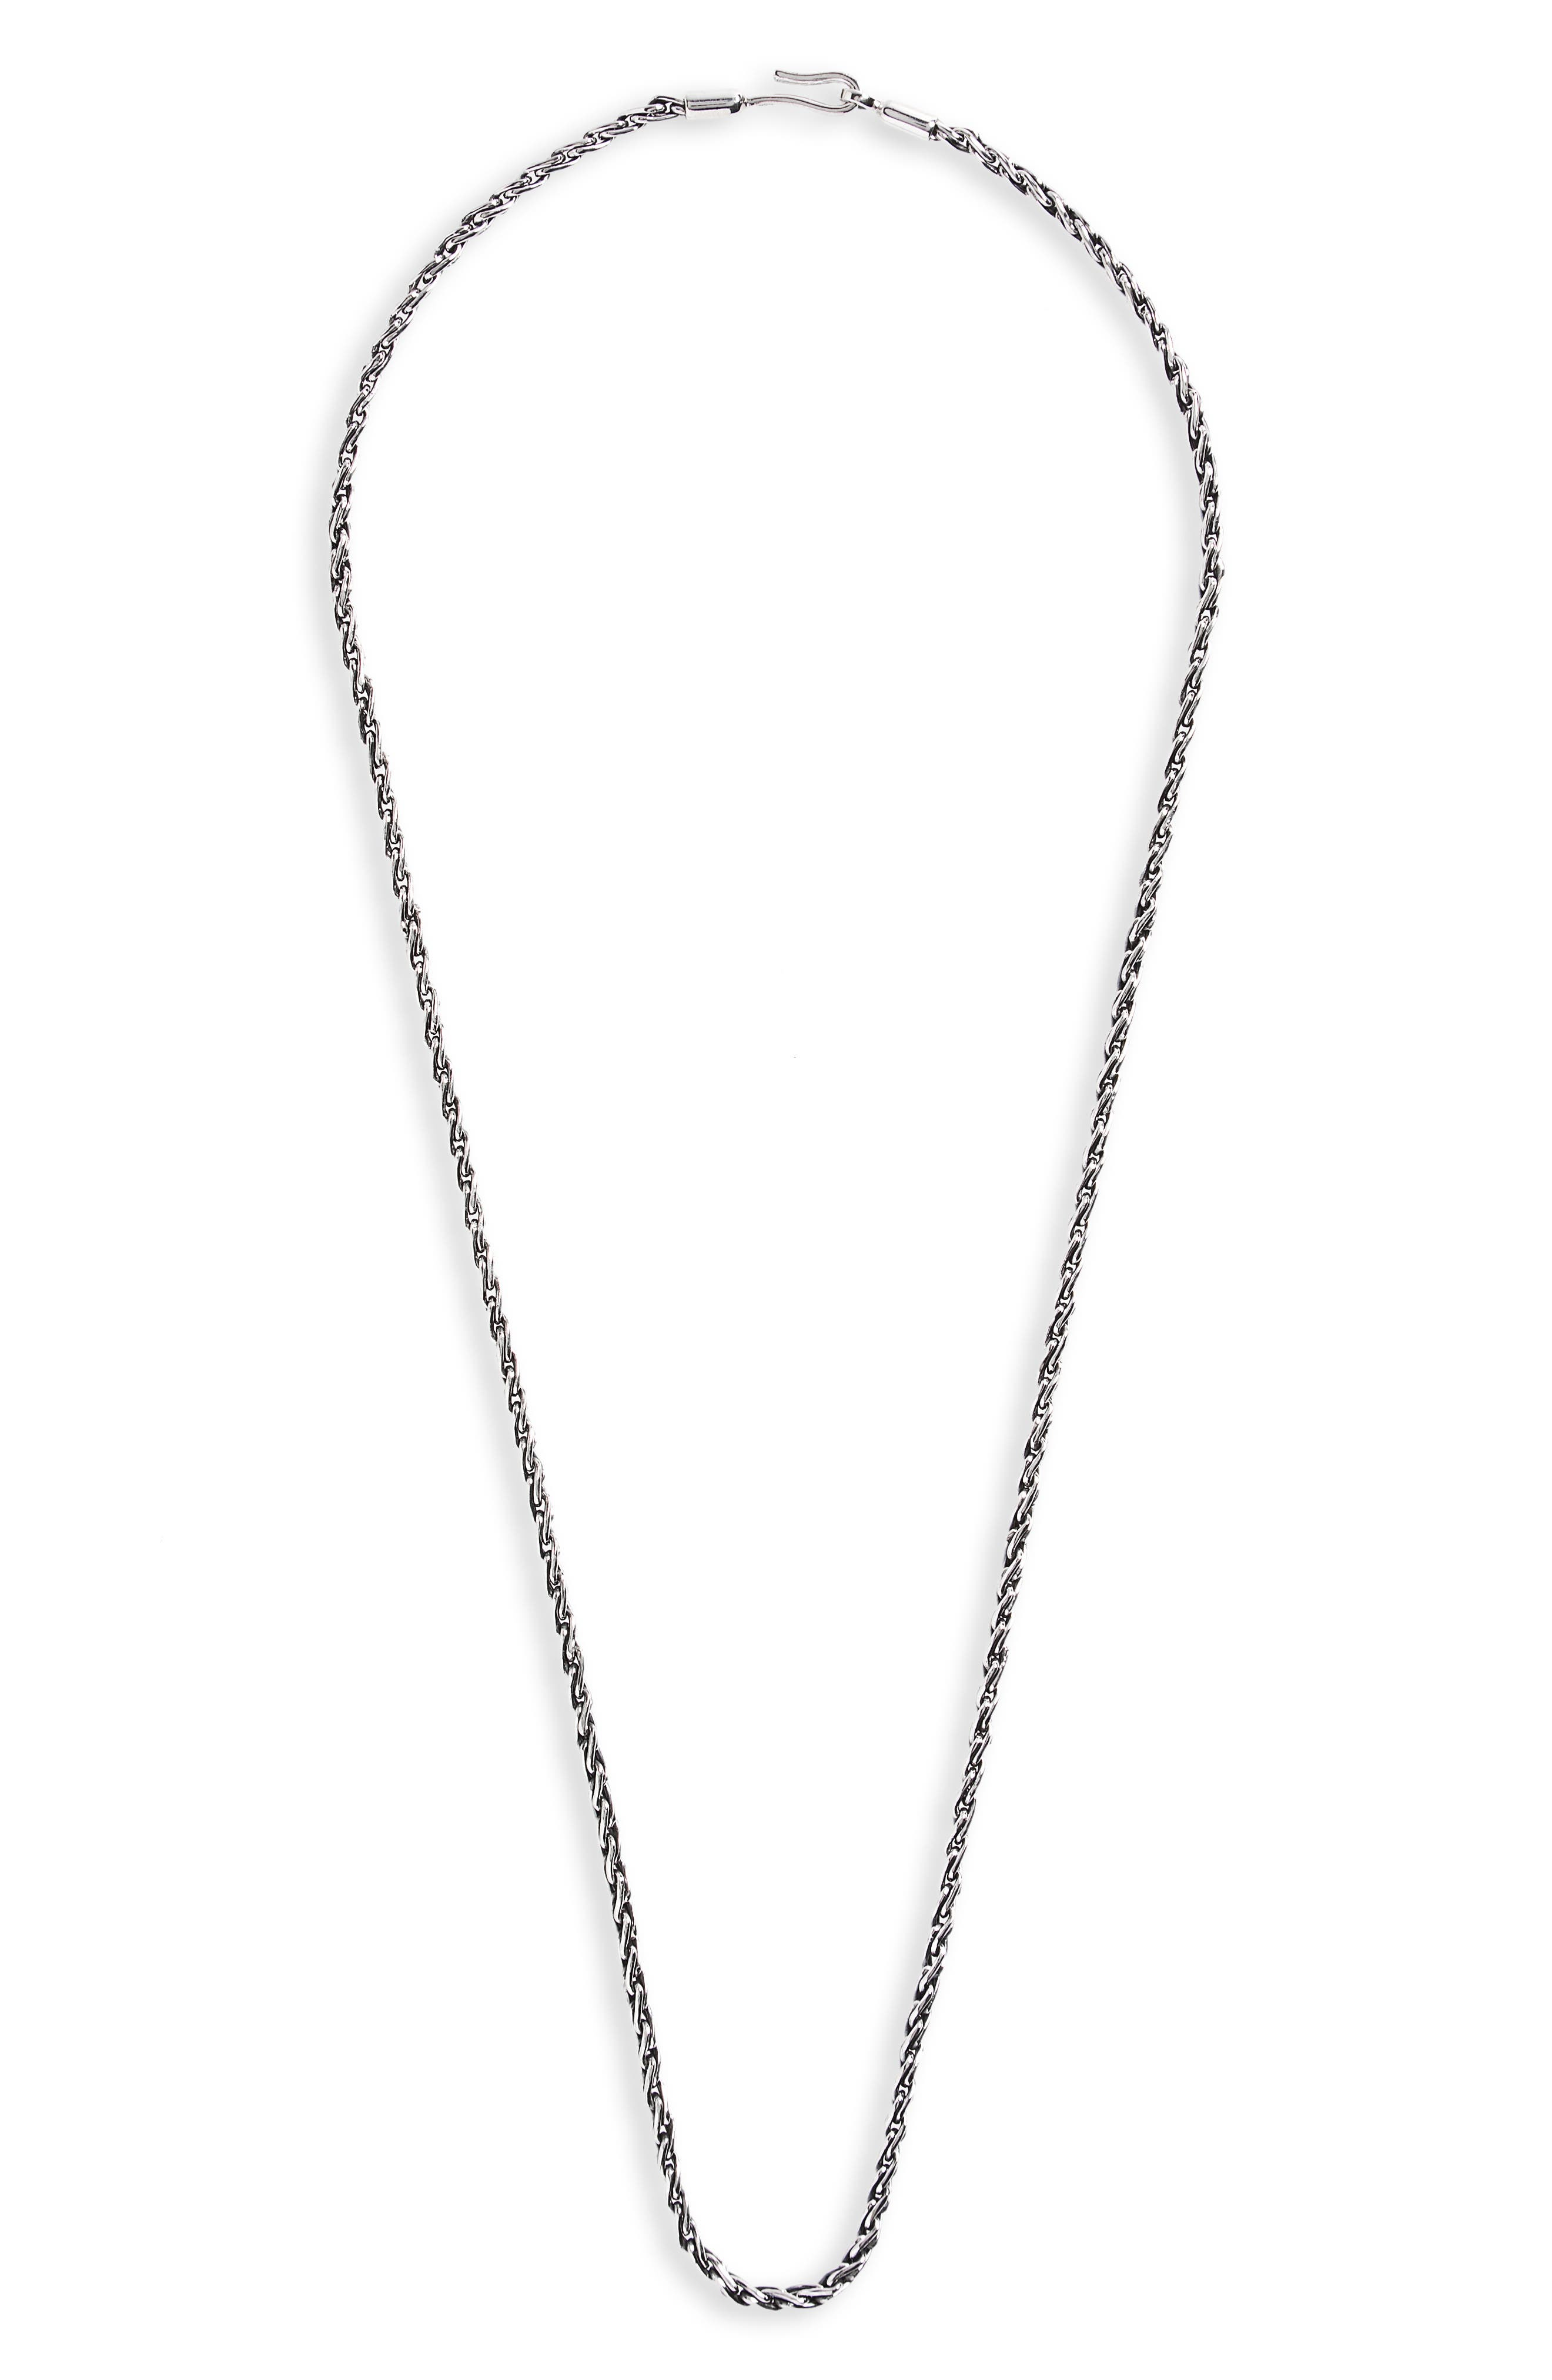 Sterling Silver Chain Necklace,                             Main thumbnail 1, color,                             040